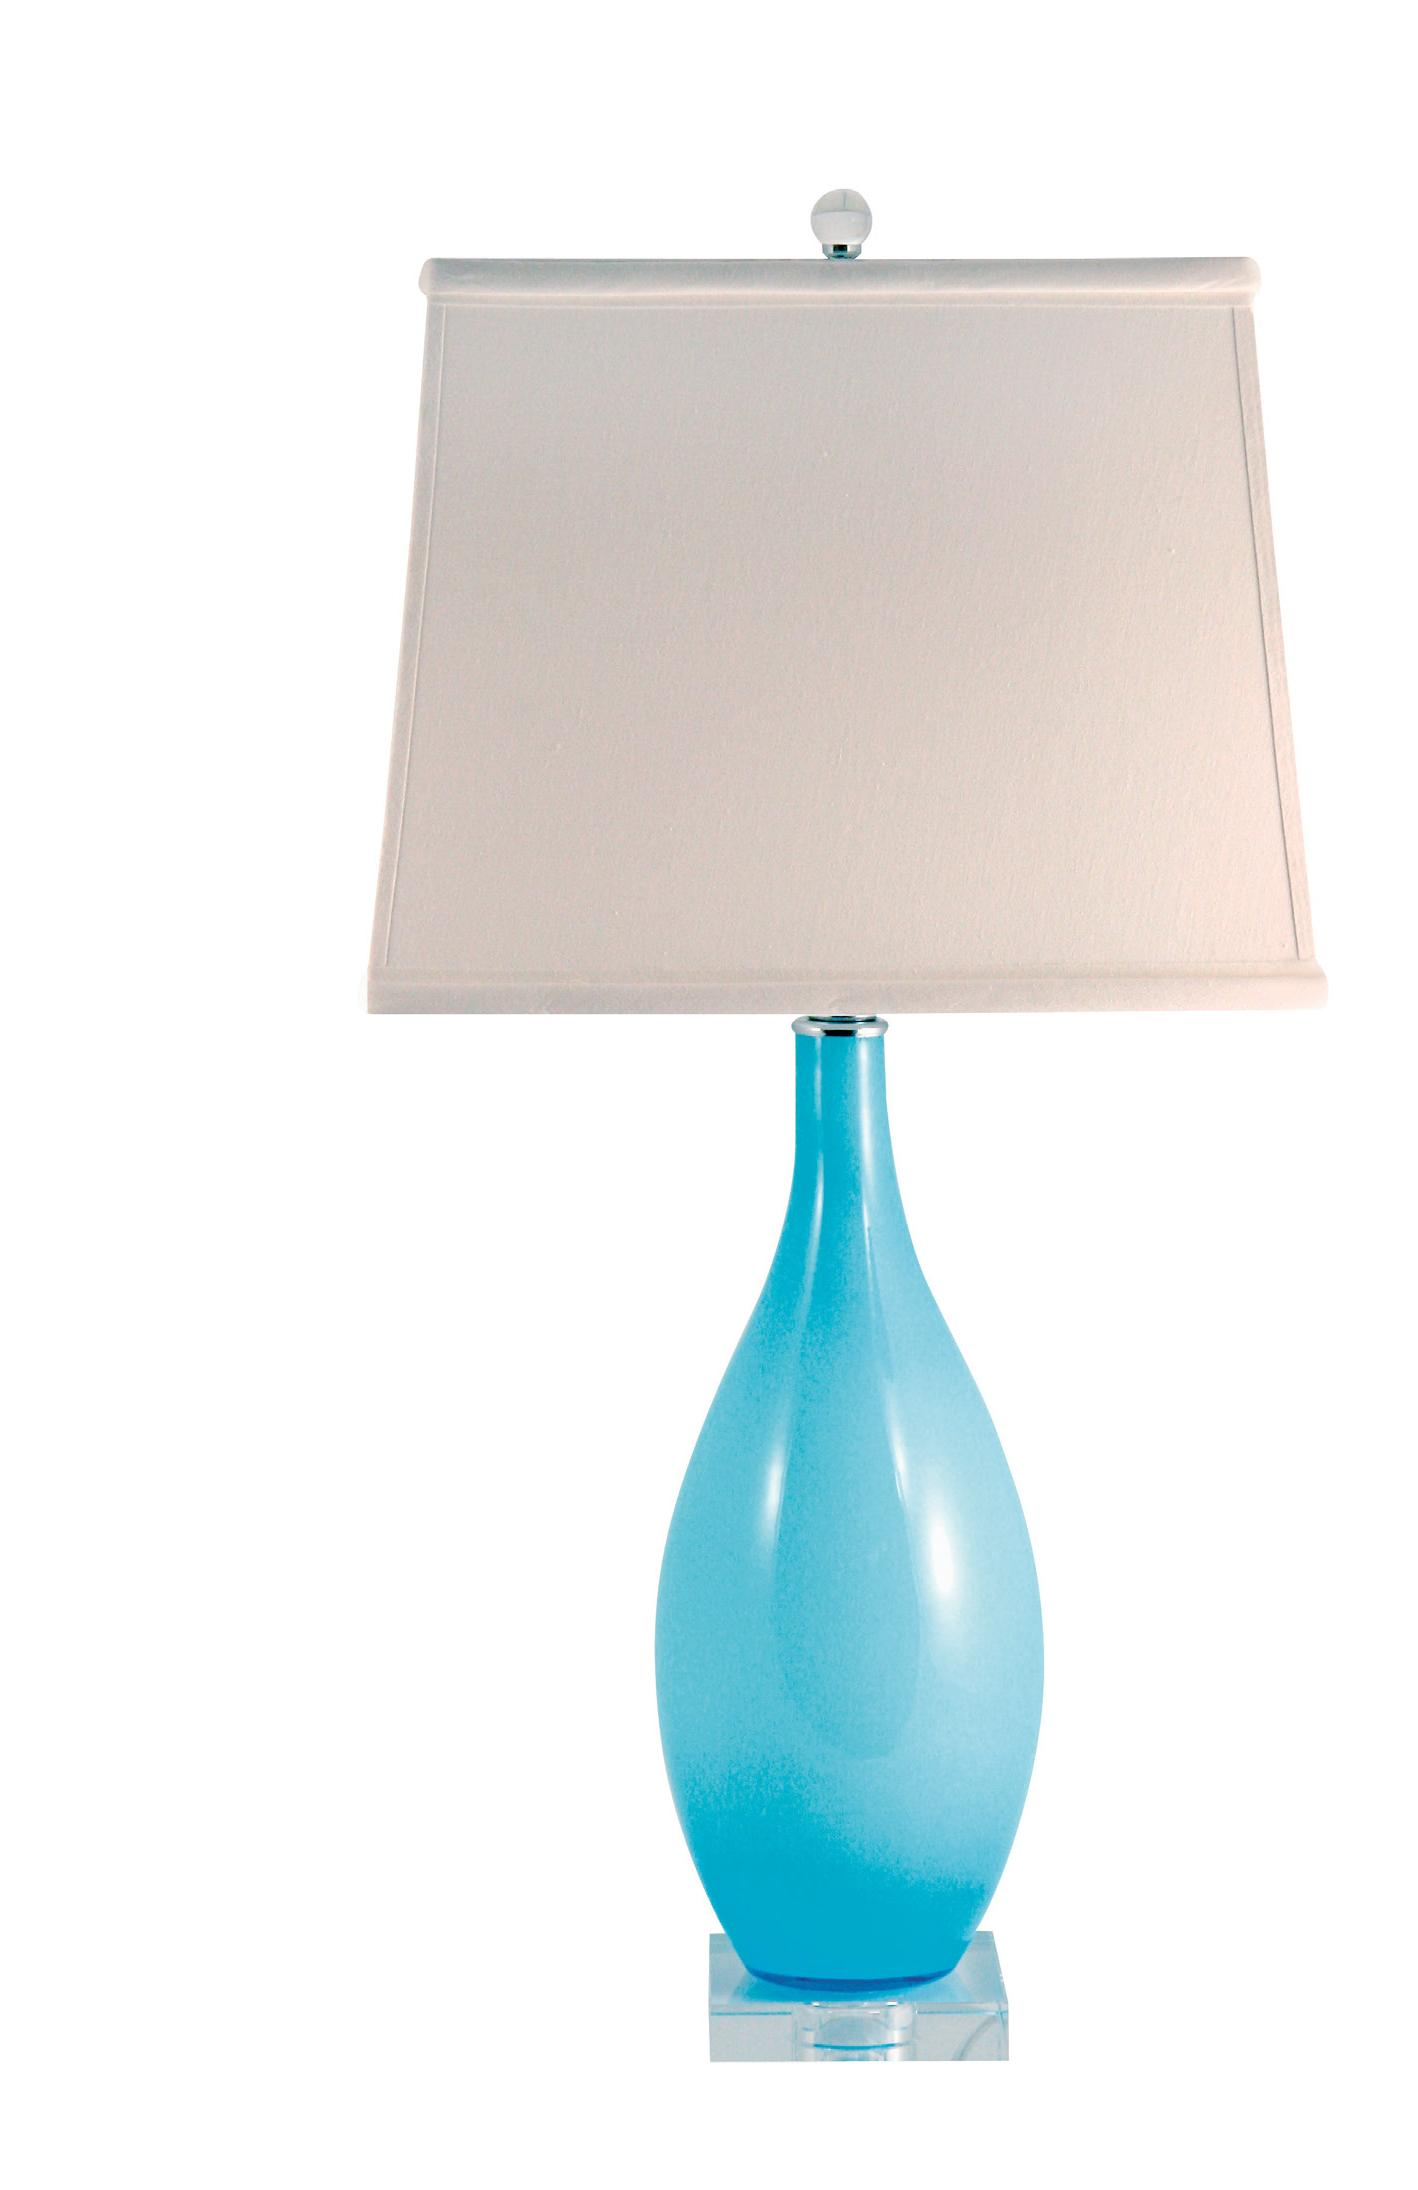 Aqua Glass Table Lamp Are One Of The Most Elegant Looking Lamps